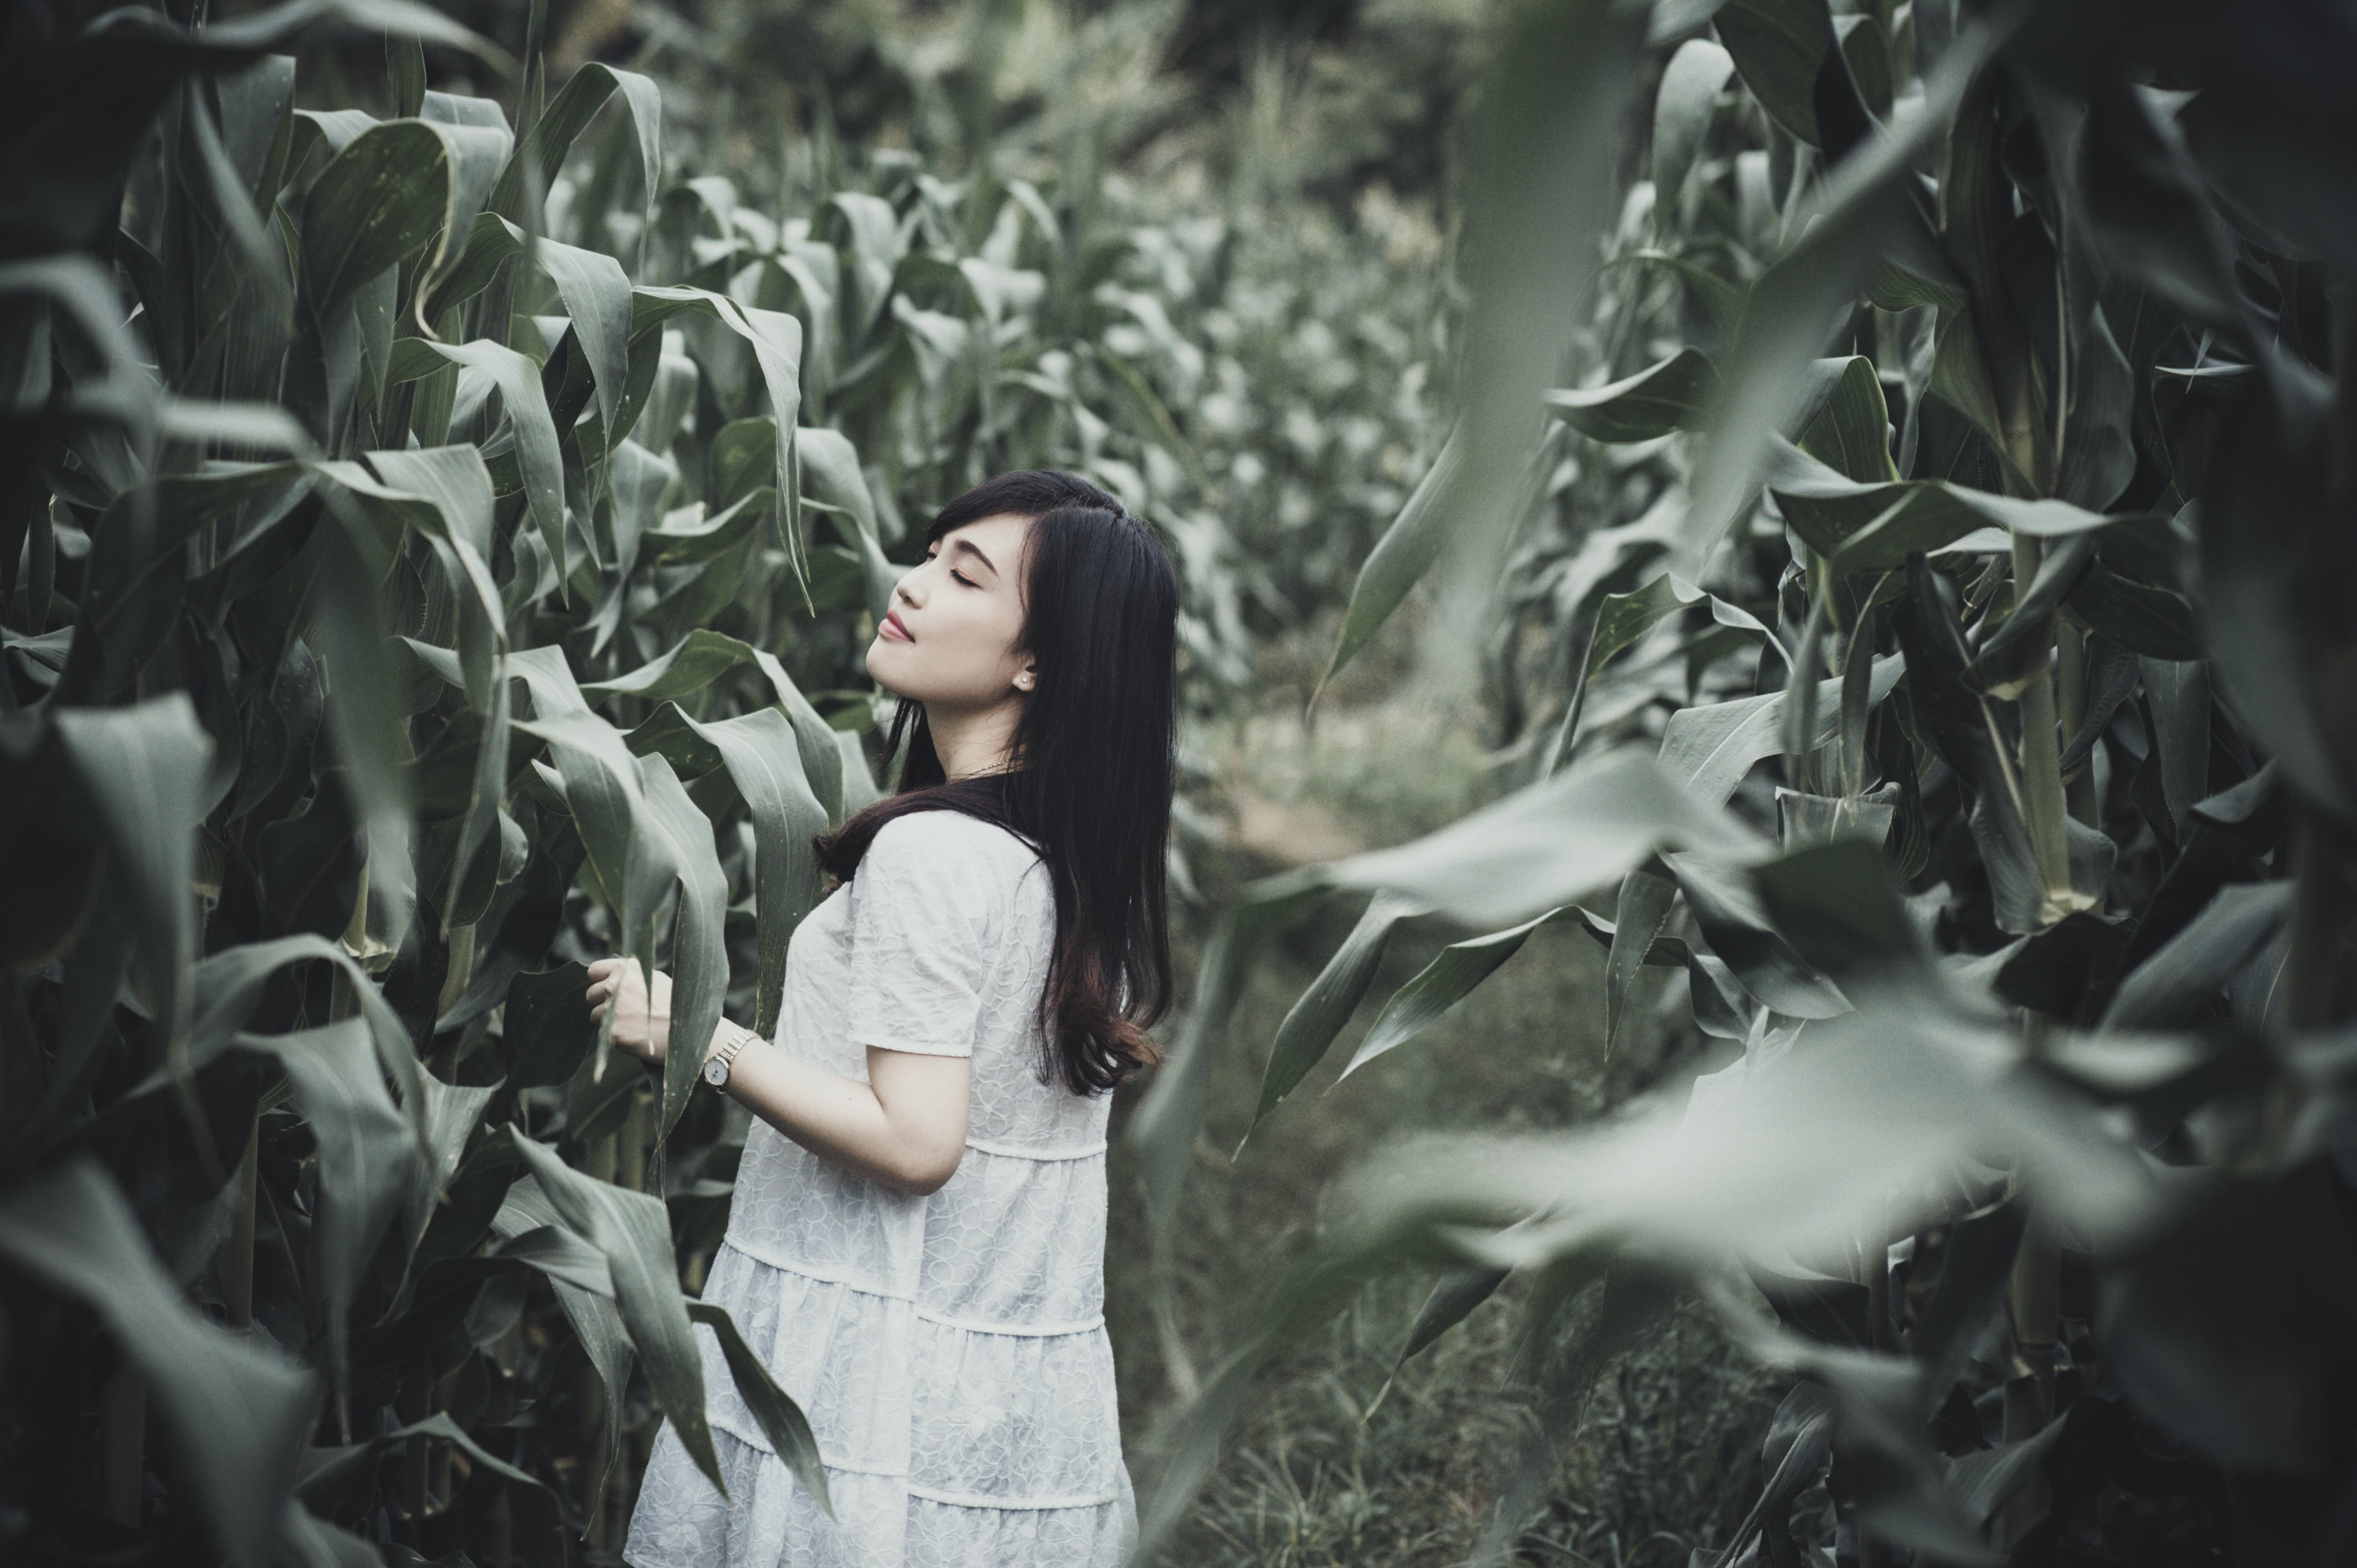 Woman Surrounded With Corn Plants